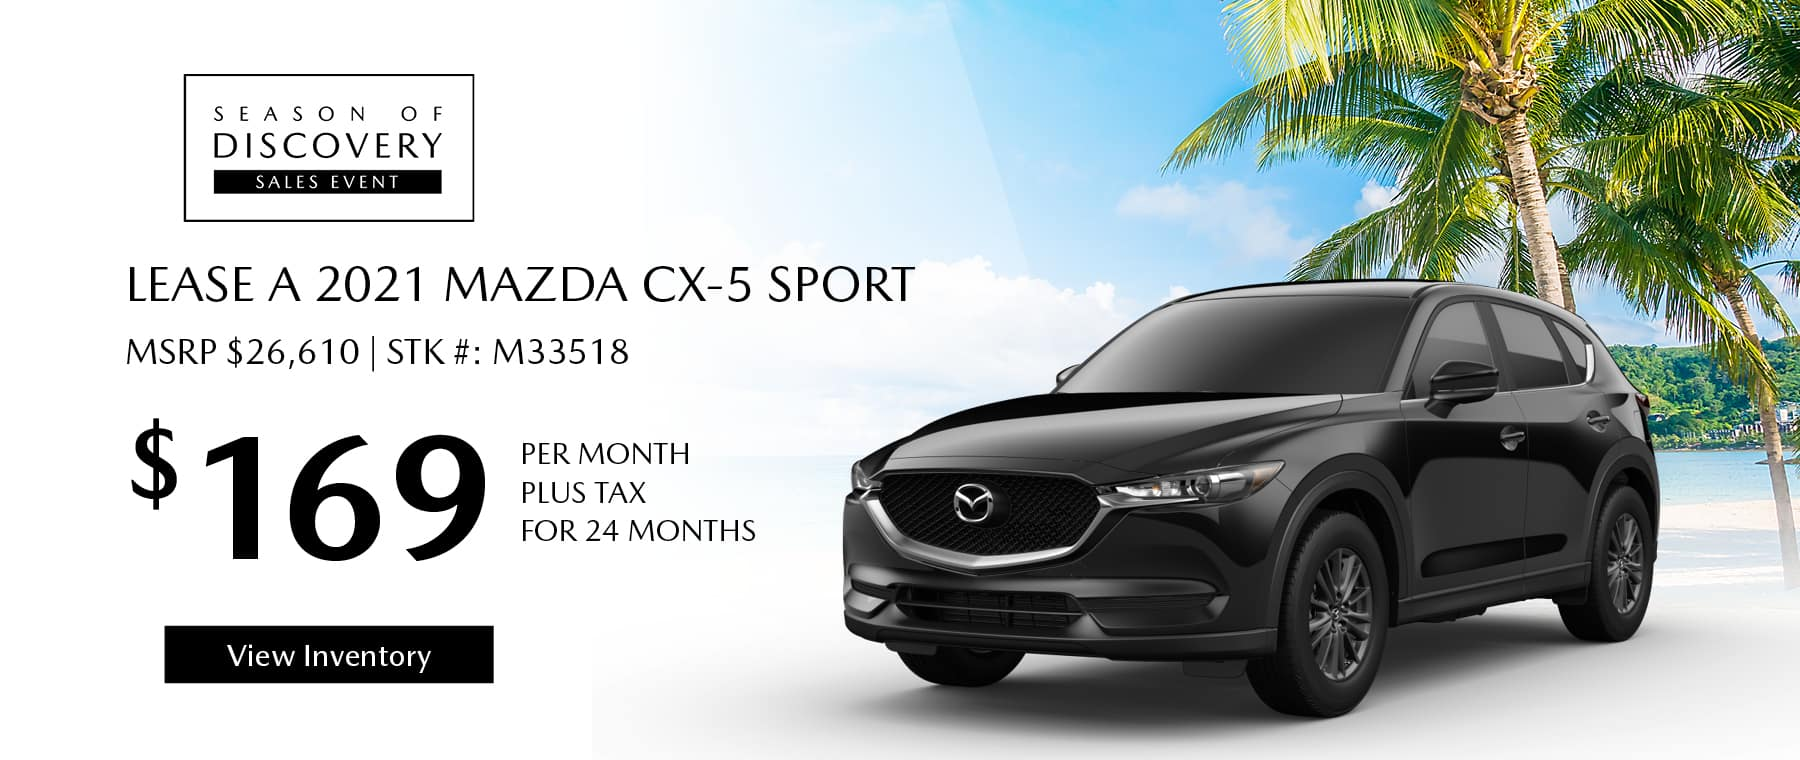 Lease the 2021 Mazda CX-5 for $169 per month, plus tax for 24 months. Click or tap here to view our inventory.